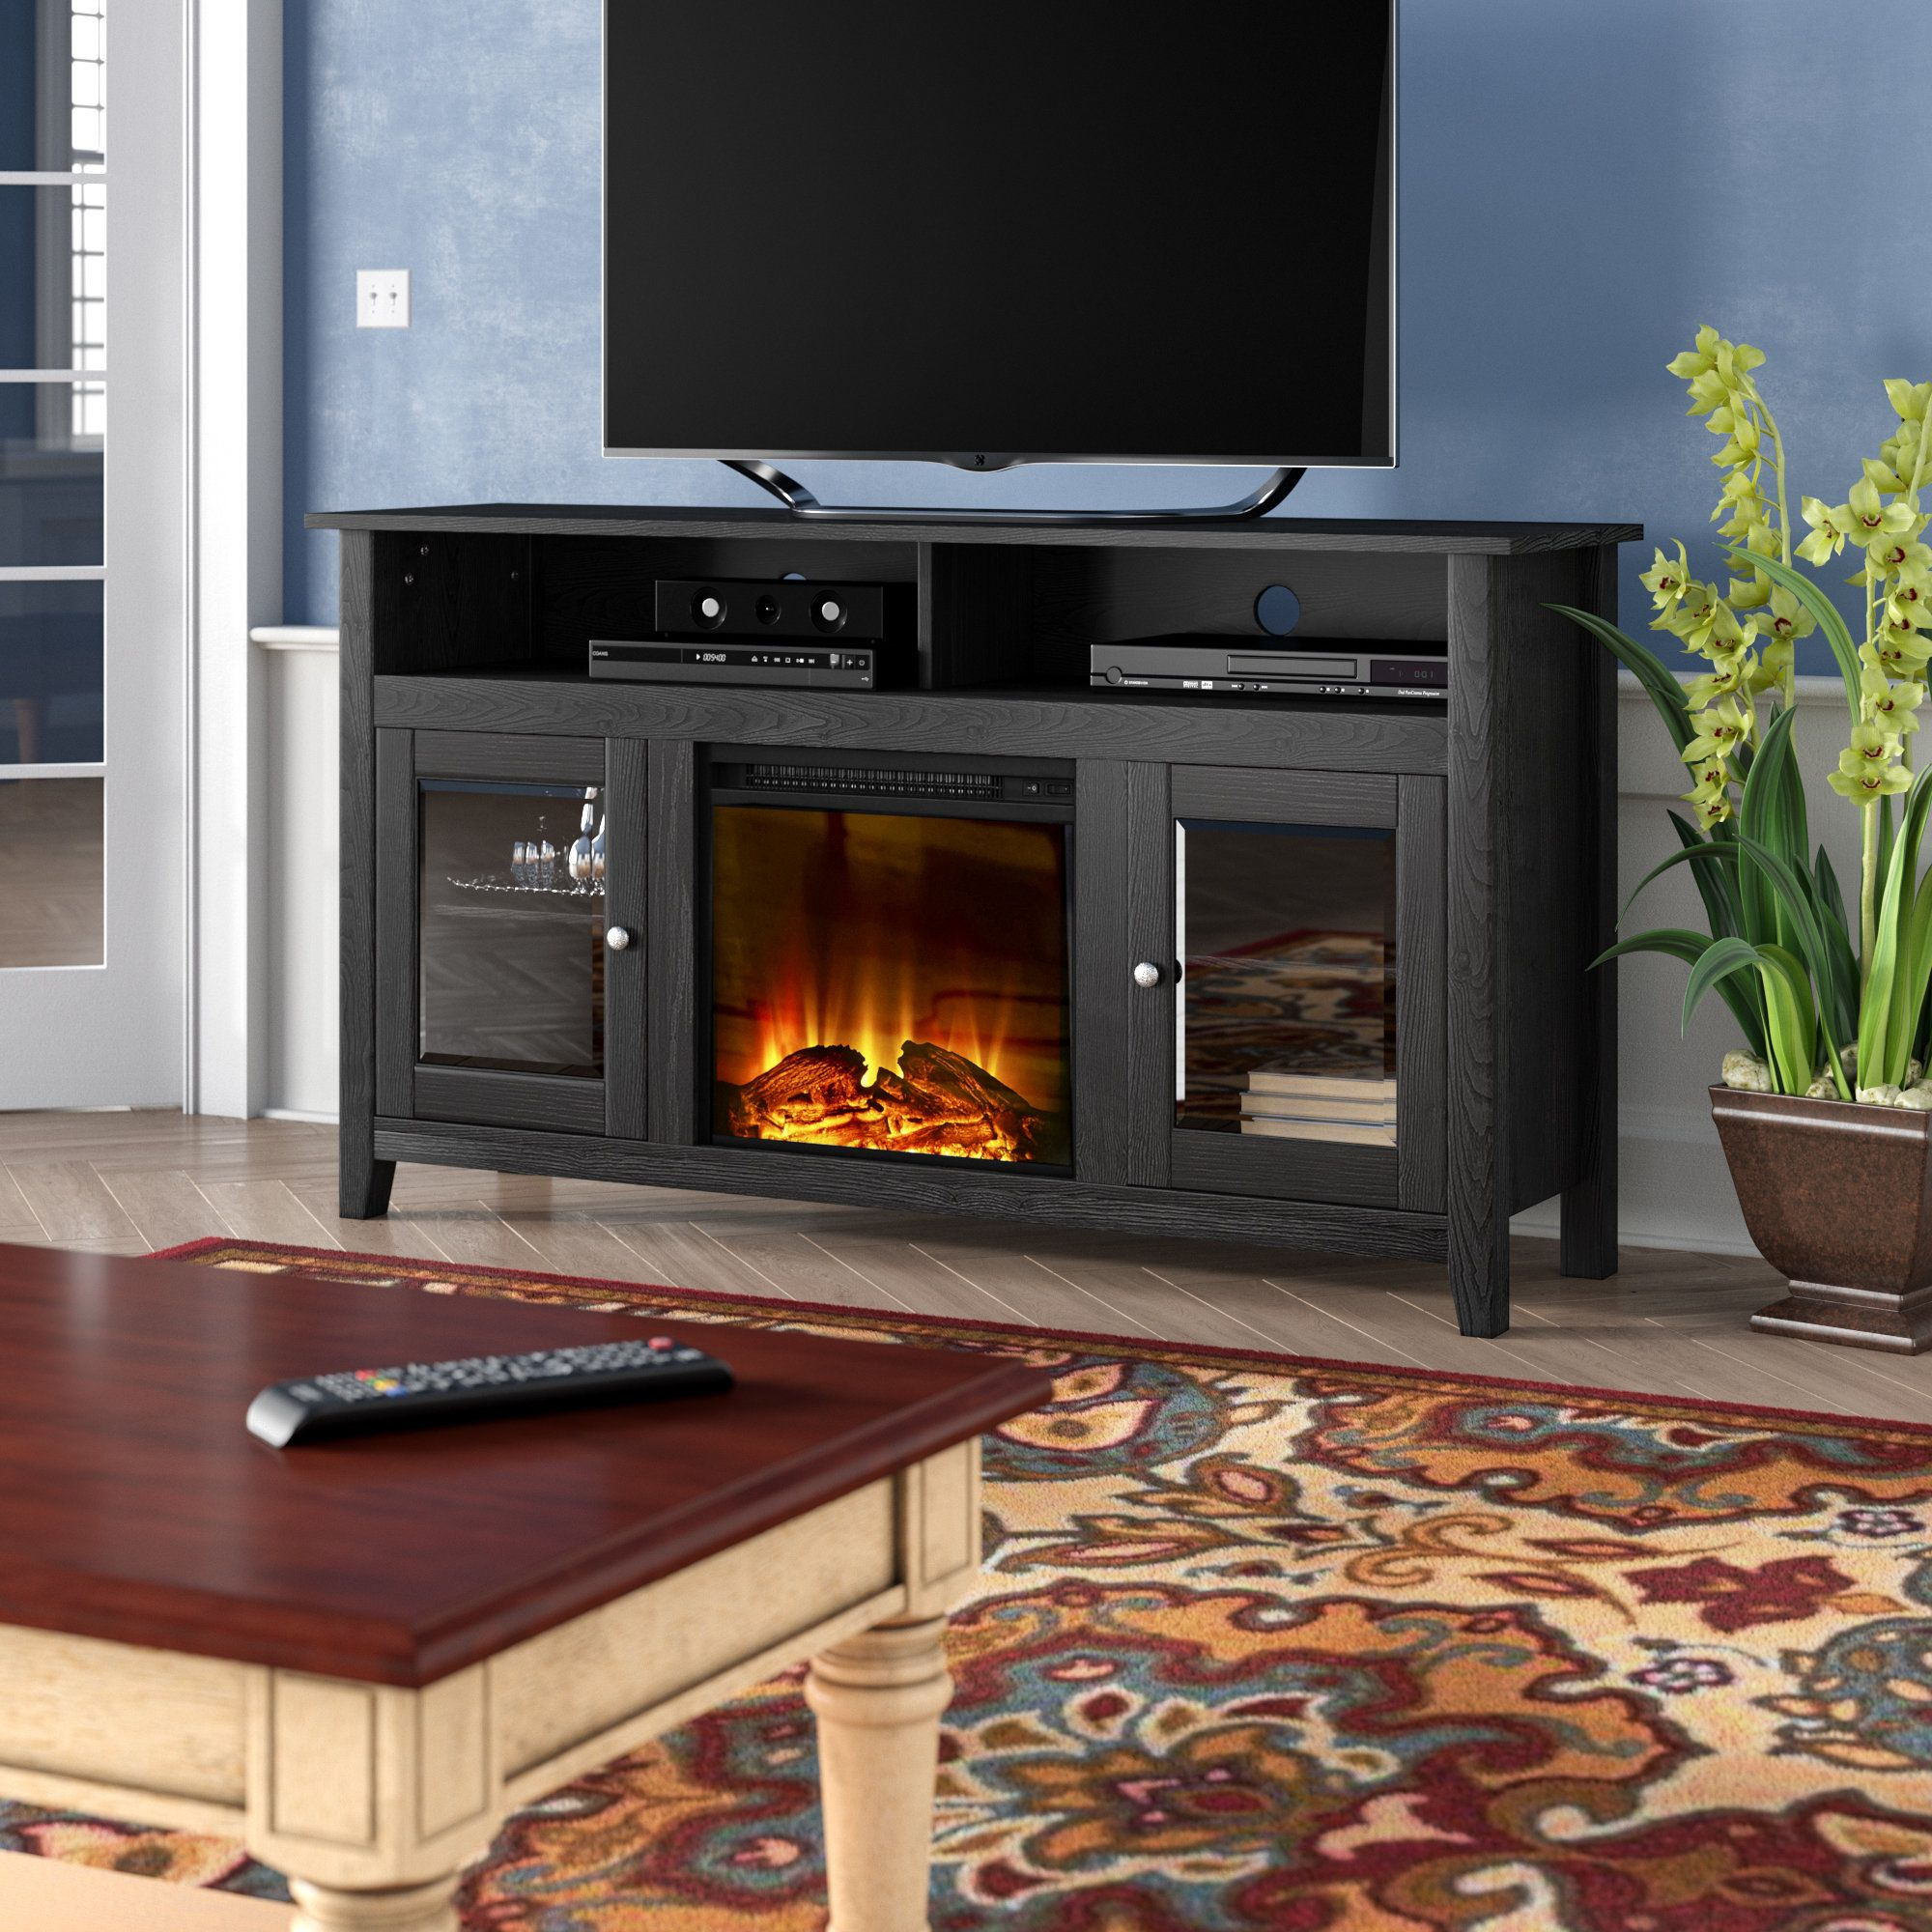 Kohn Tv Stand For Tvs Up To 65 With Electric Fireplace Included Electric Fireplace Tv Stand Fireplace Tv Stand Family Room Design